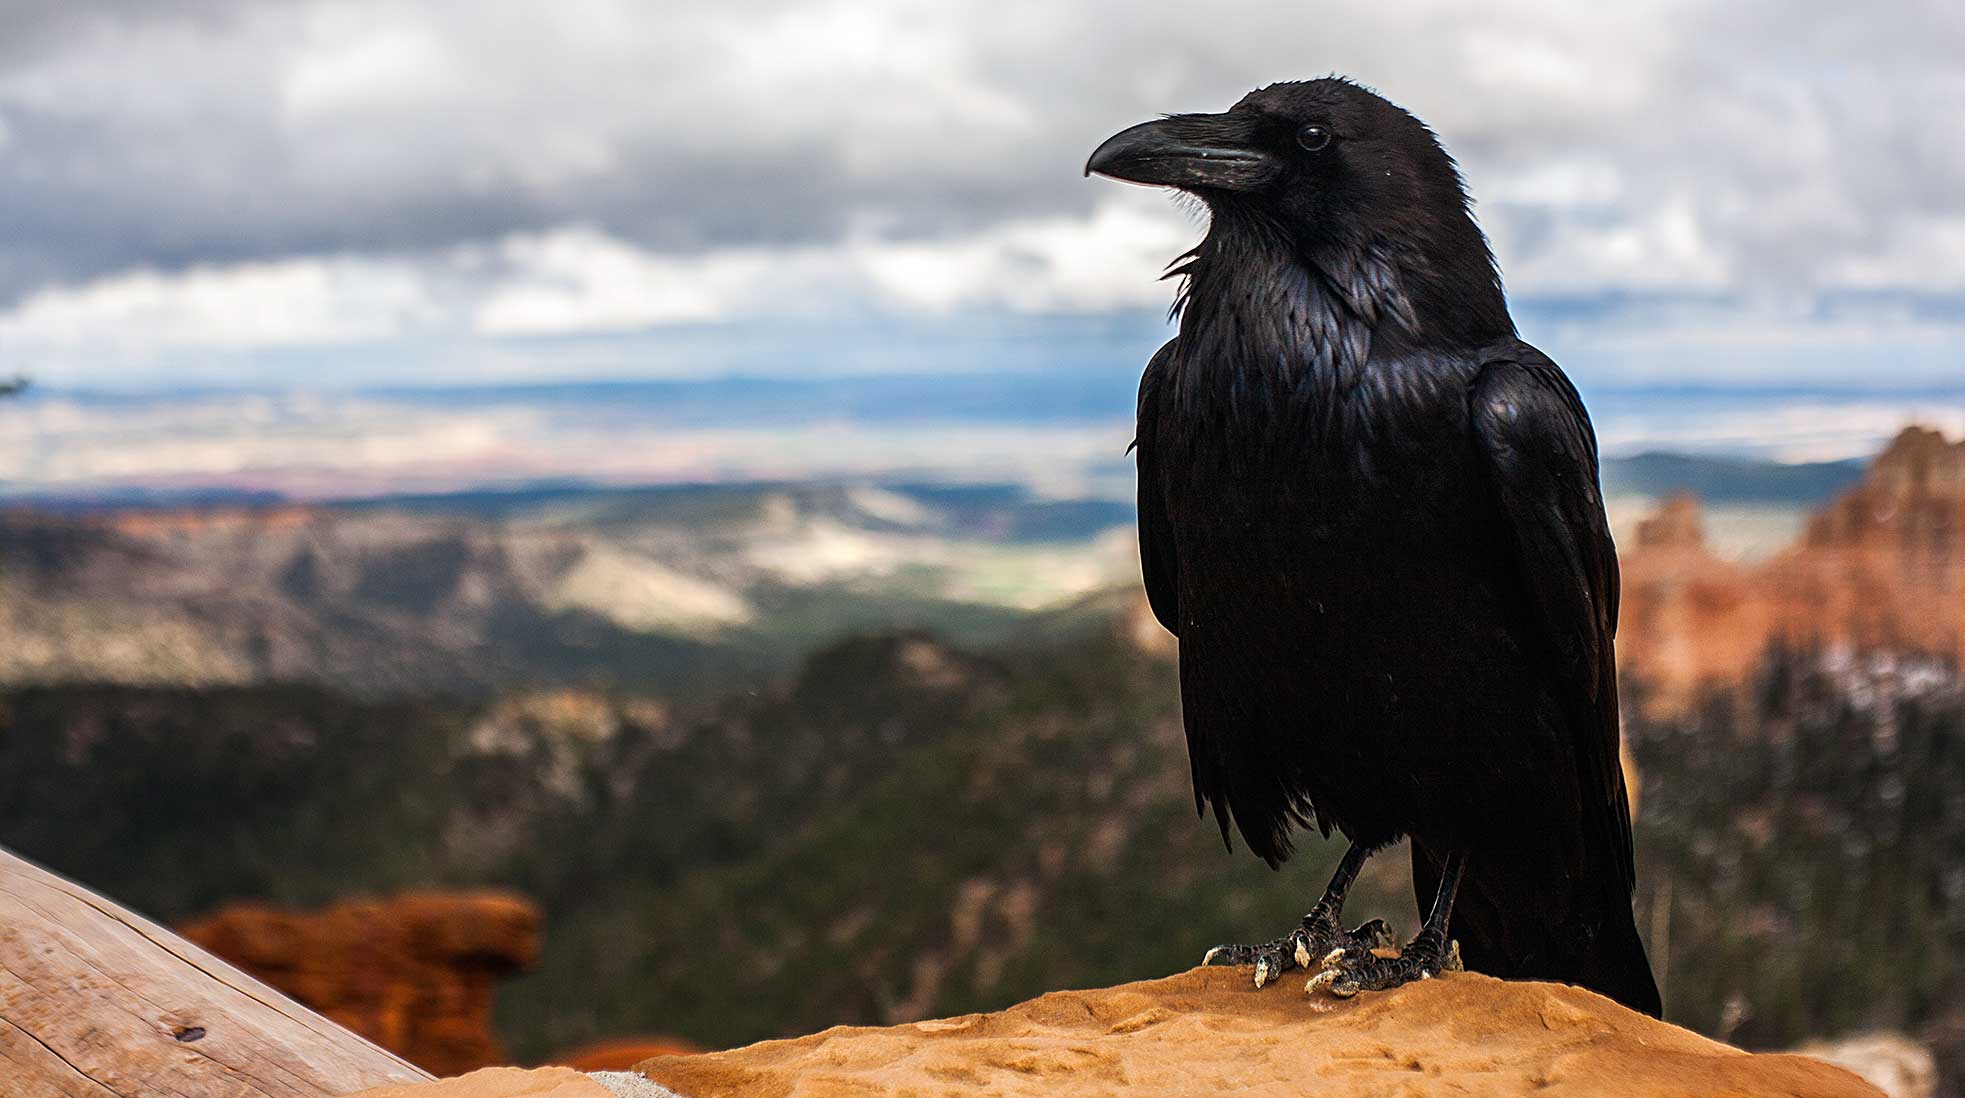 A raven looking out over a mountainous landscape